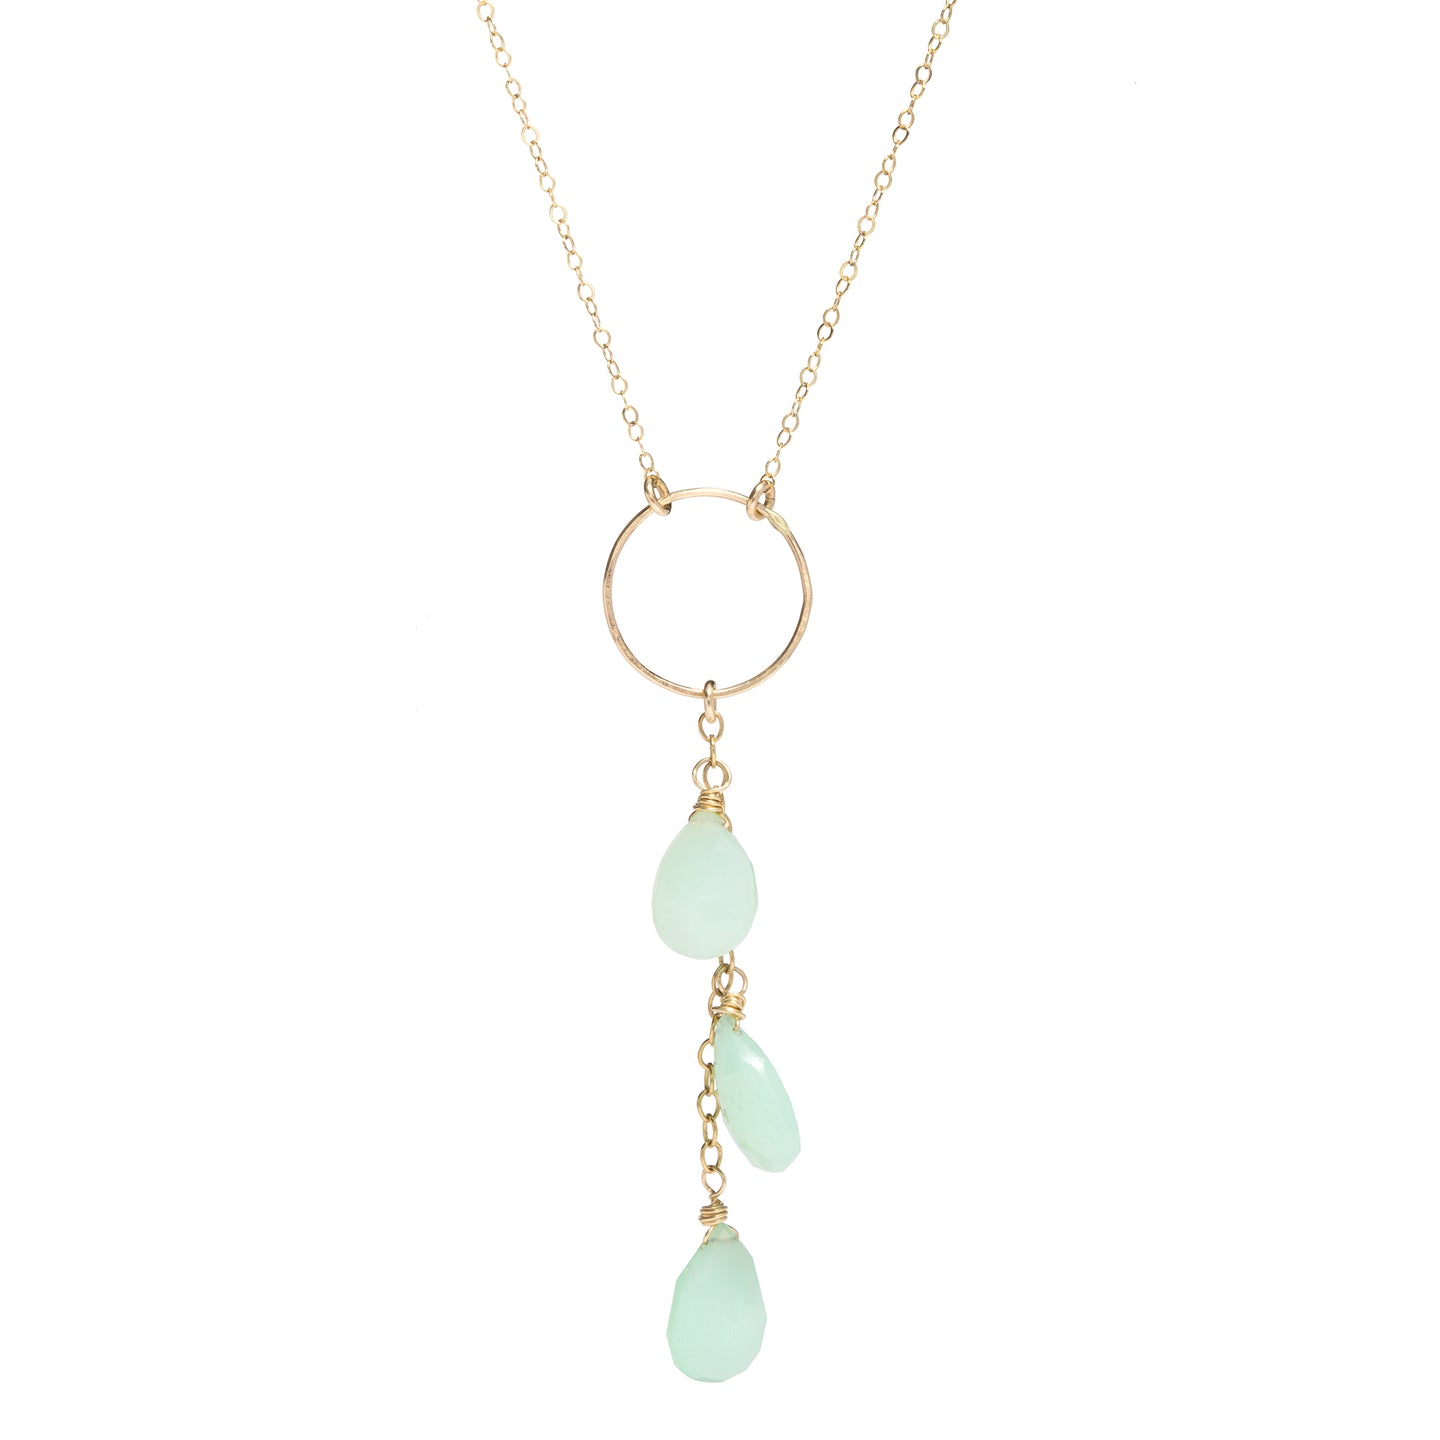 Triple Chrysoprase Drop Necklace